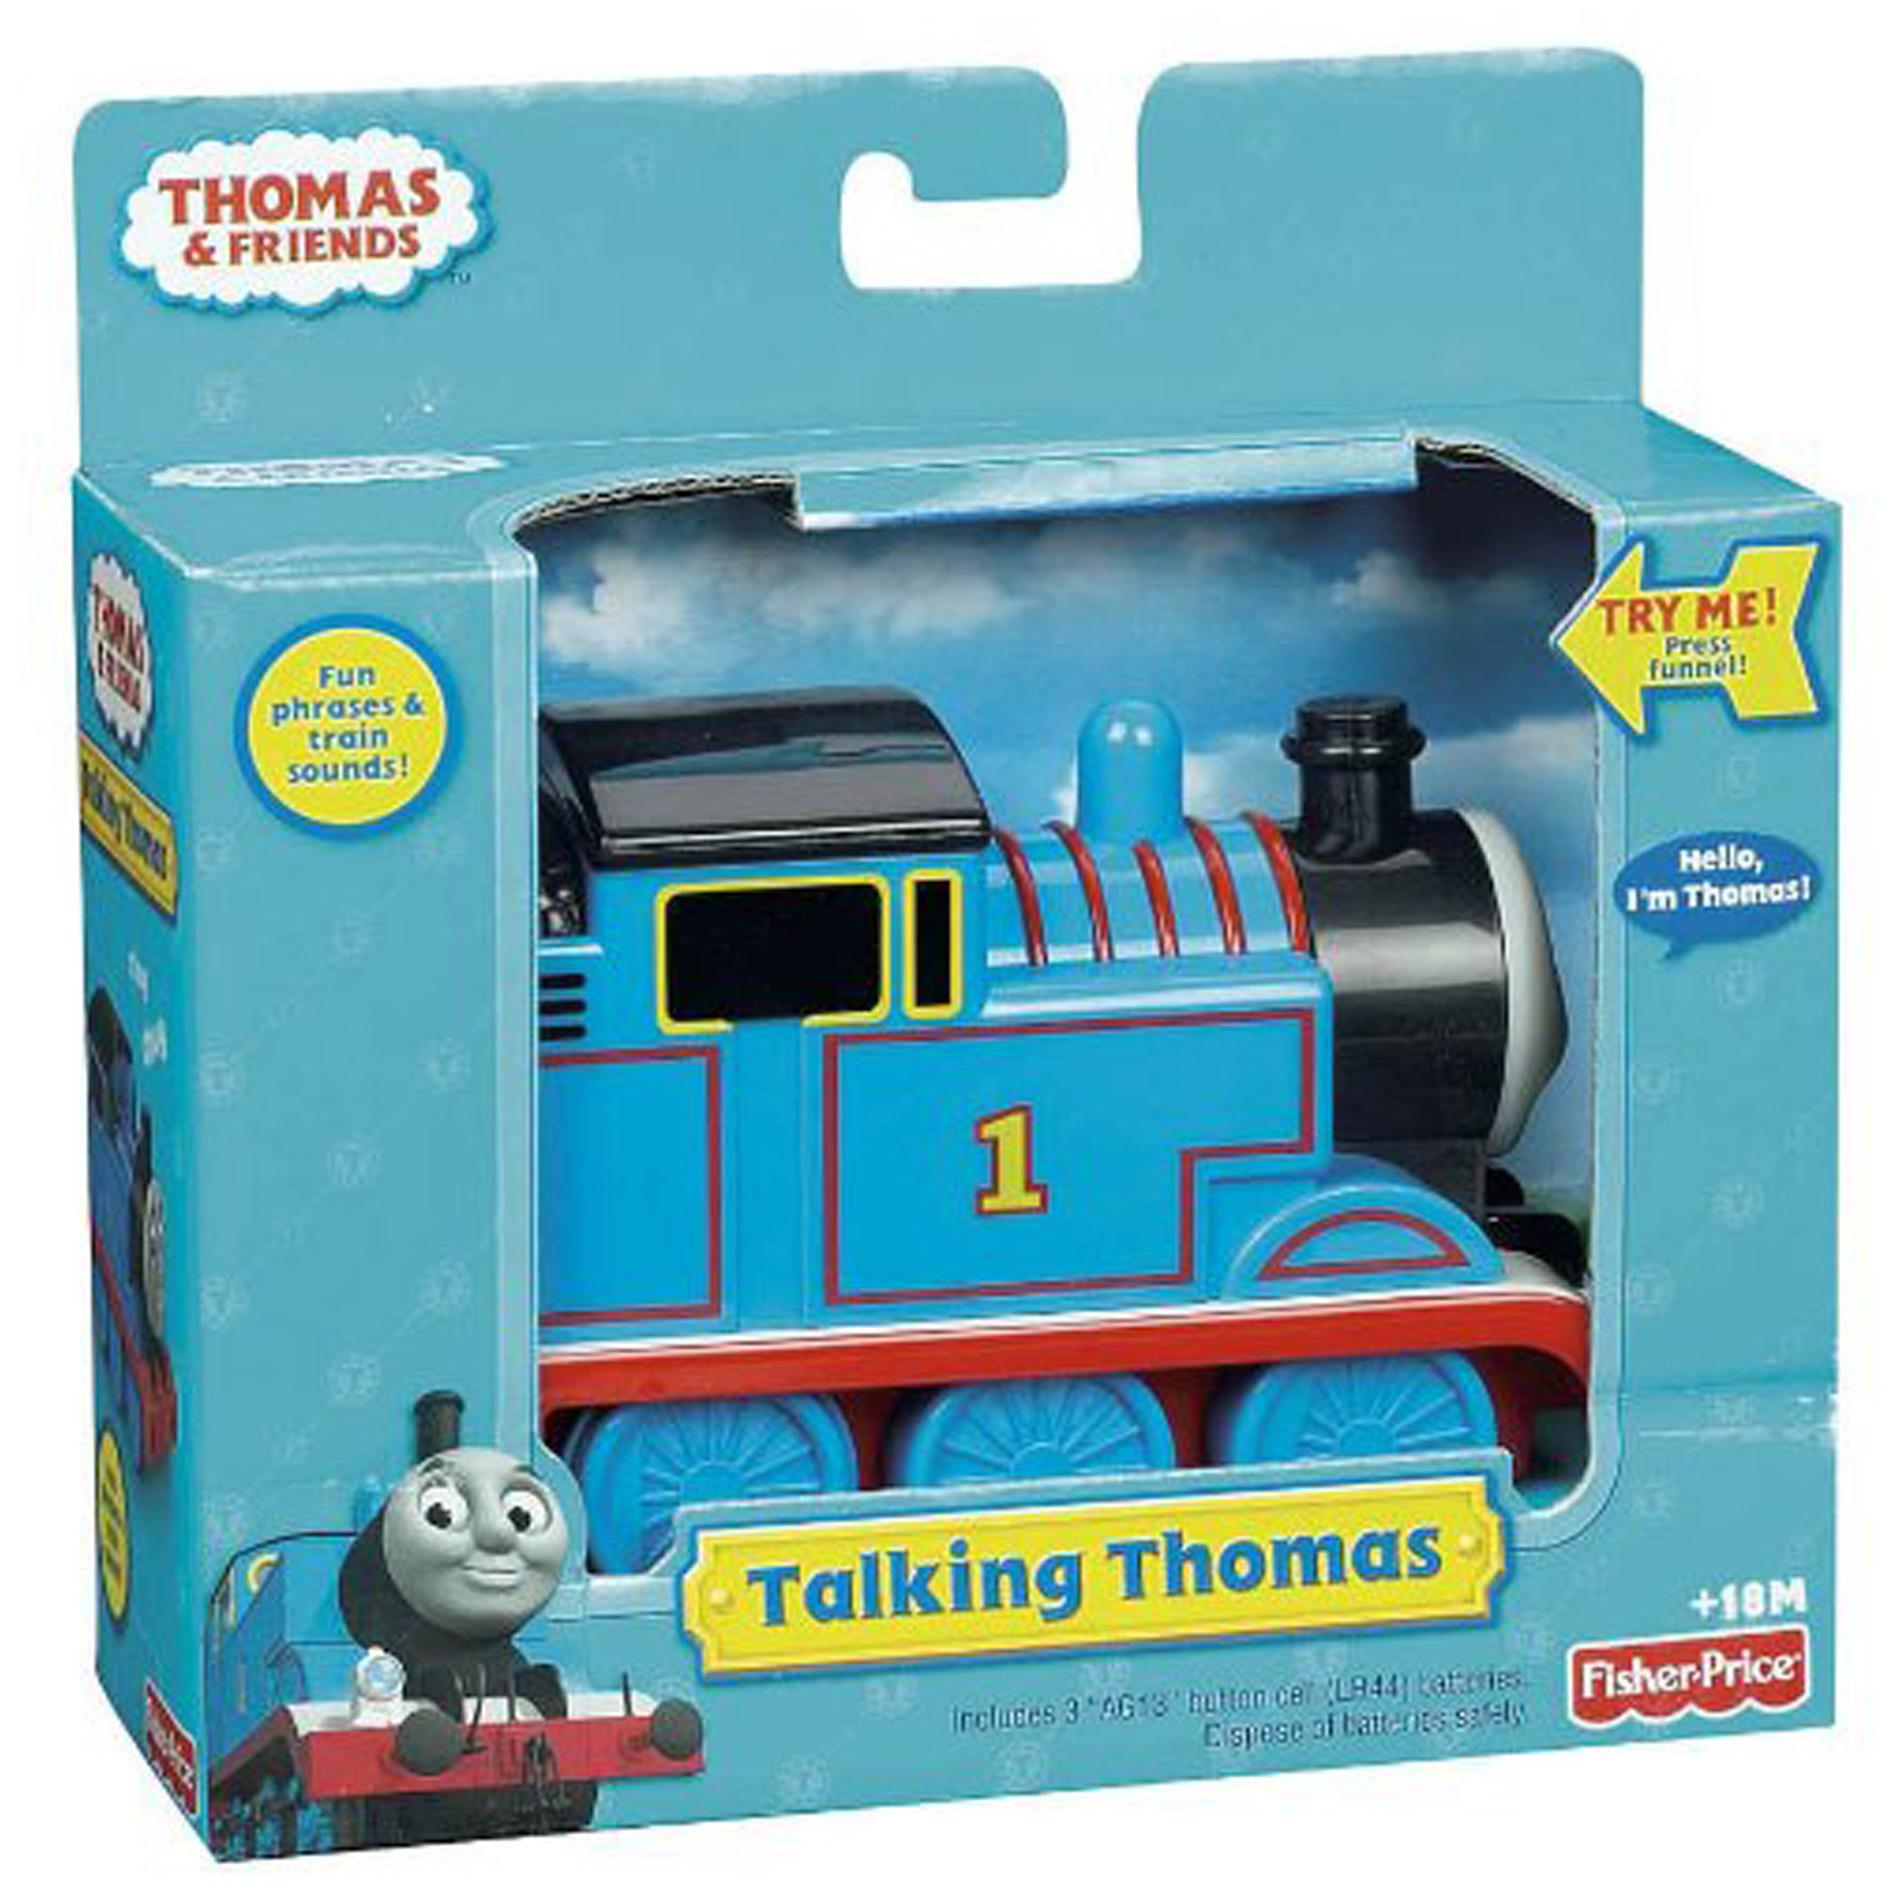 Fisher Price Thomas and Friends 'Talking Thomas' Toy Train Engine